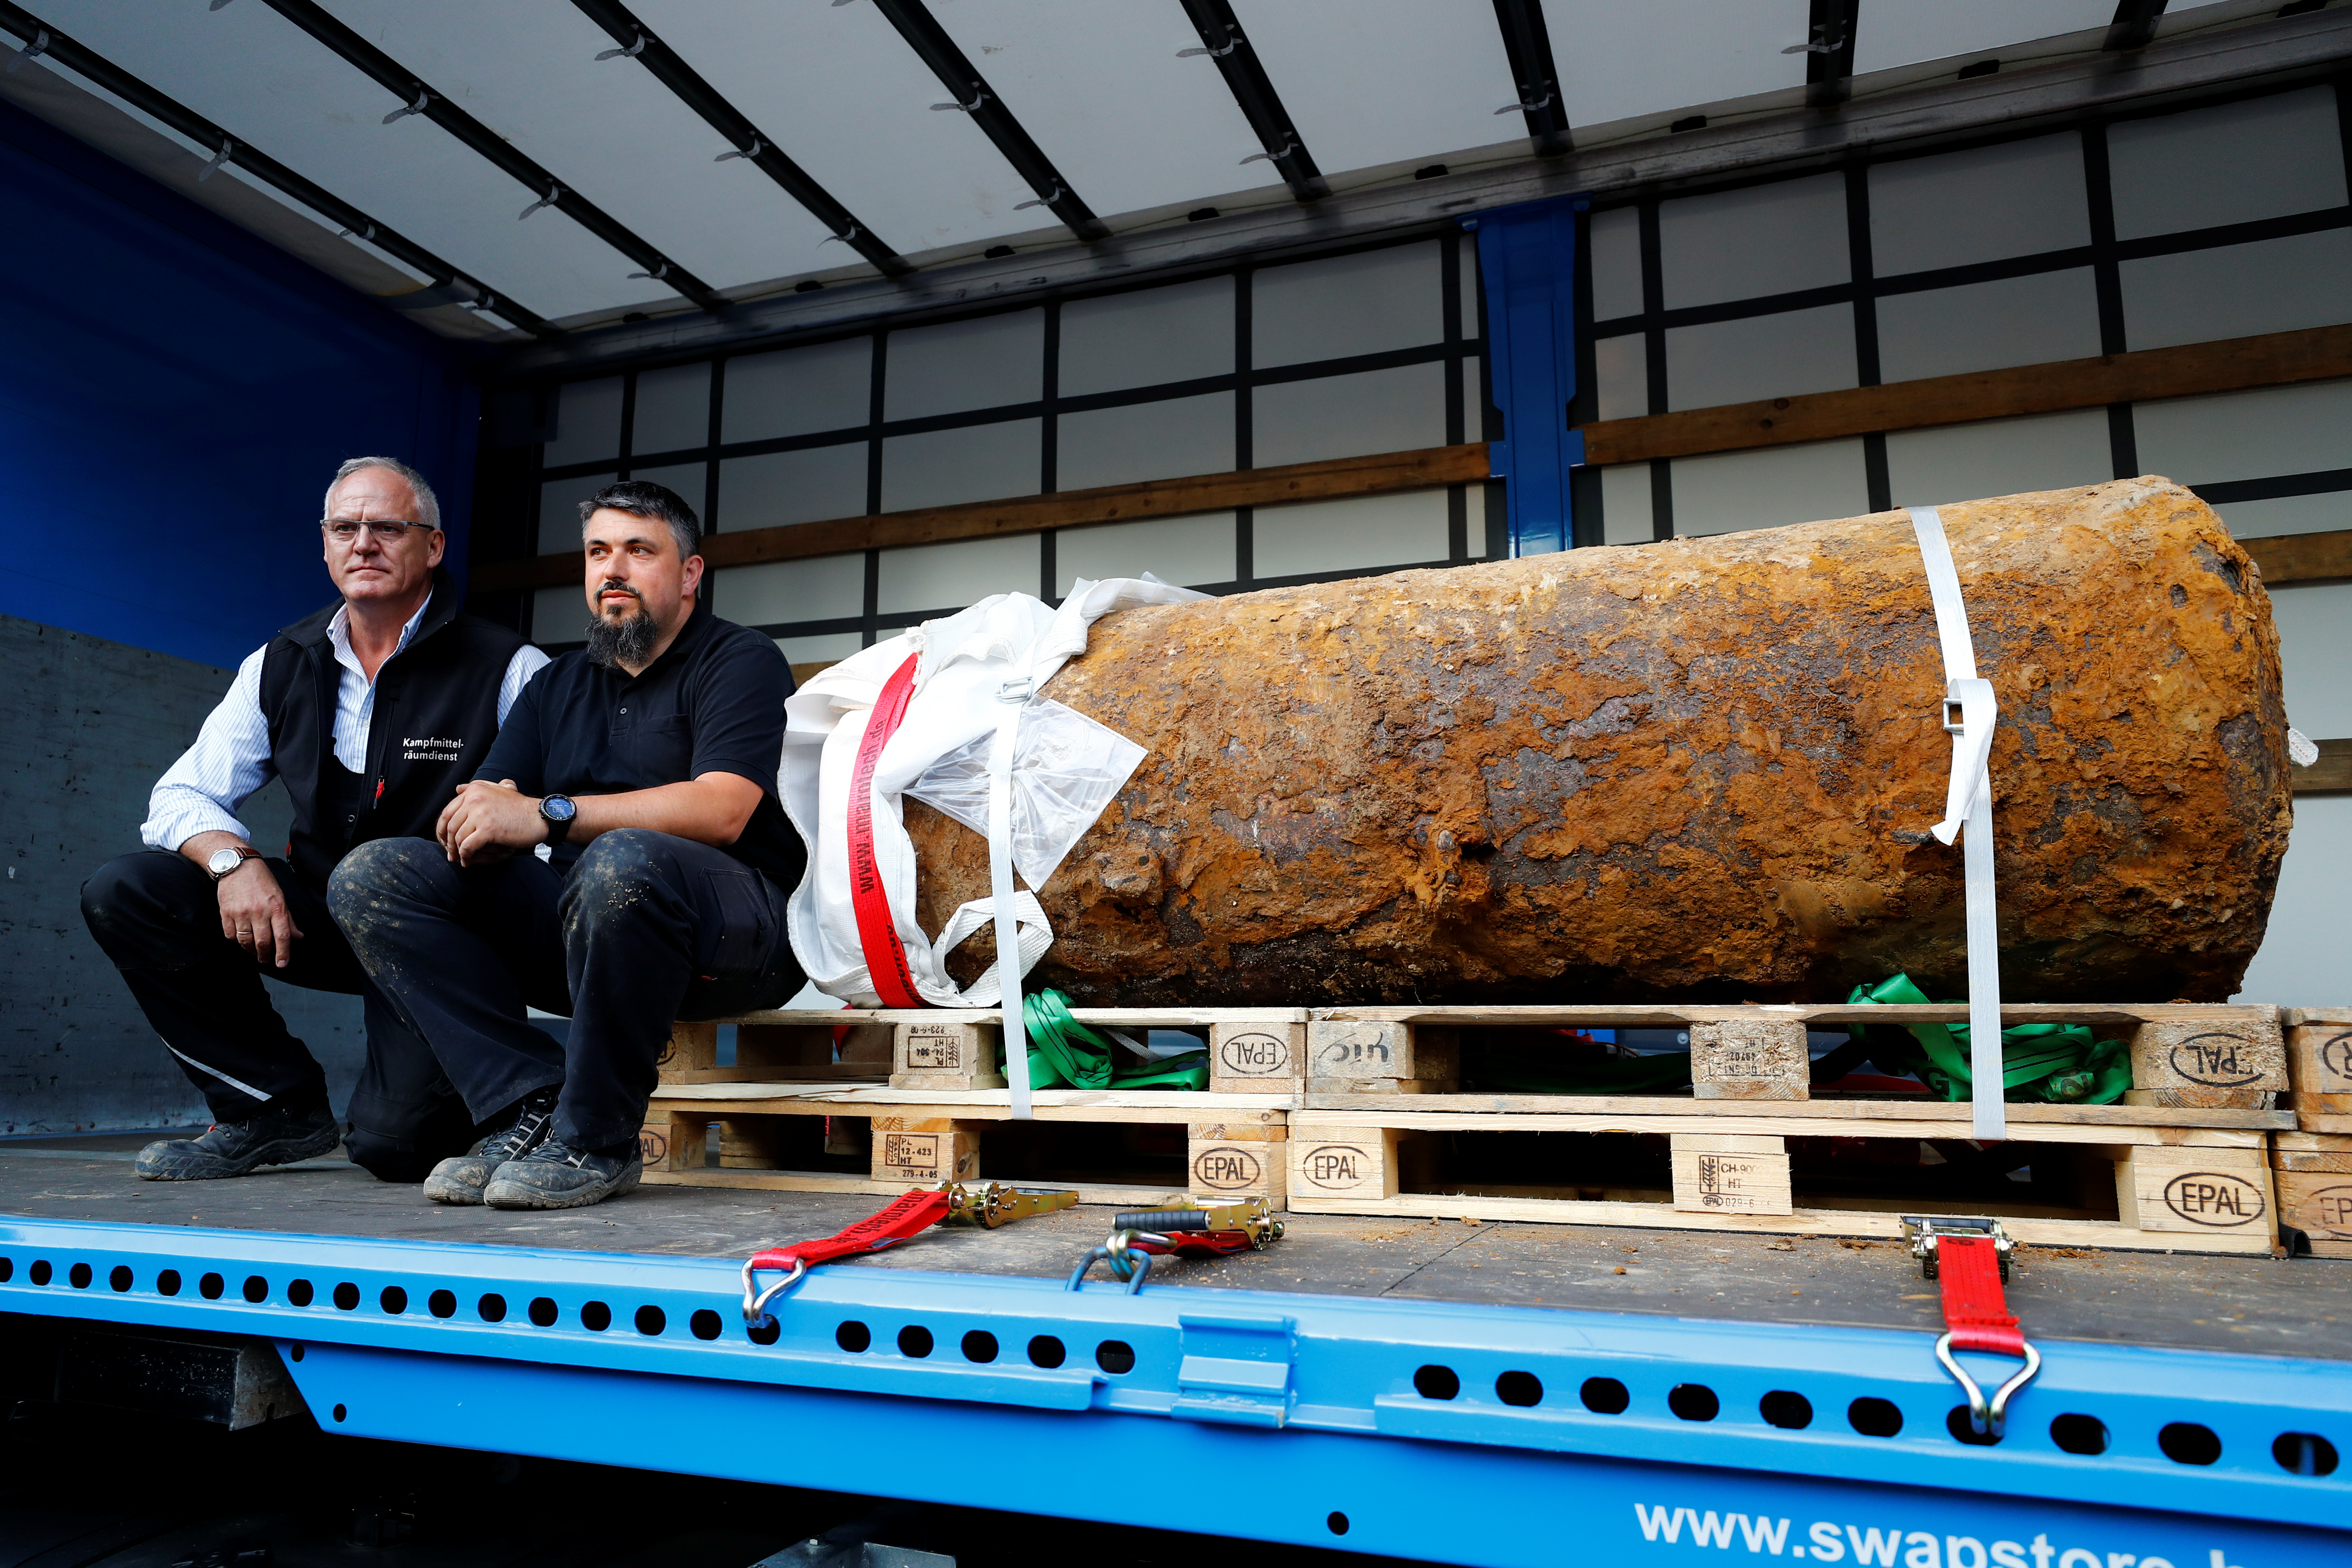 Bomb disposal expert Rene Bennert and Dieter Schweizler speak next to defused massive World War Two bomb after tens of thousands of people evacuated their homes in Frankfurt, Germany on Sept. 3, 2017.  (REUTERS/Kai Pfaffenbach)